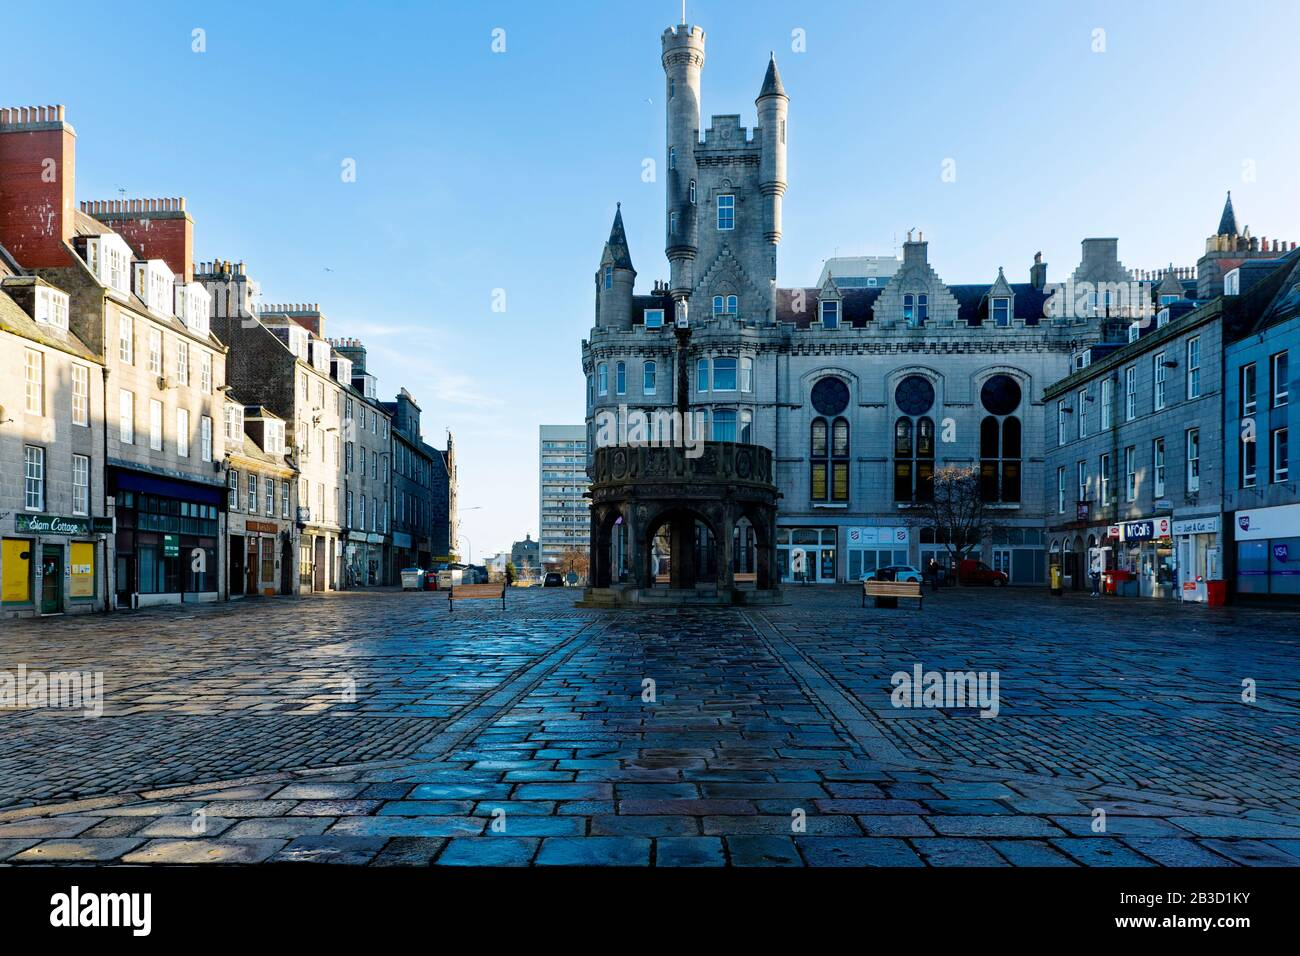 Early Morning photograph of empty Mercat Cross square, Castlegate, Aberdeen, Scotland, the Salvation Army Church in the background Stock Photo